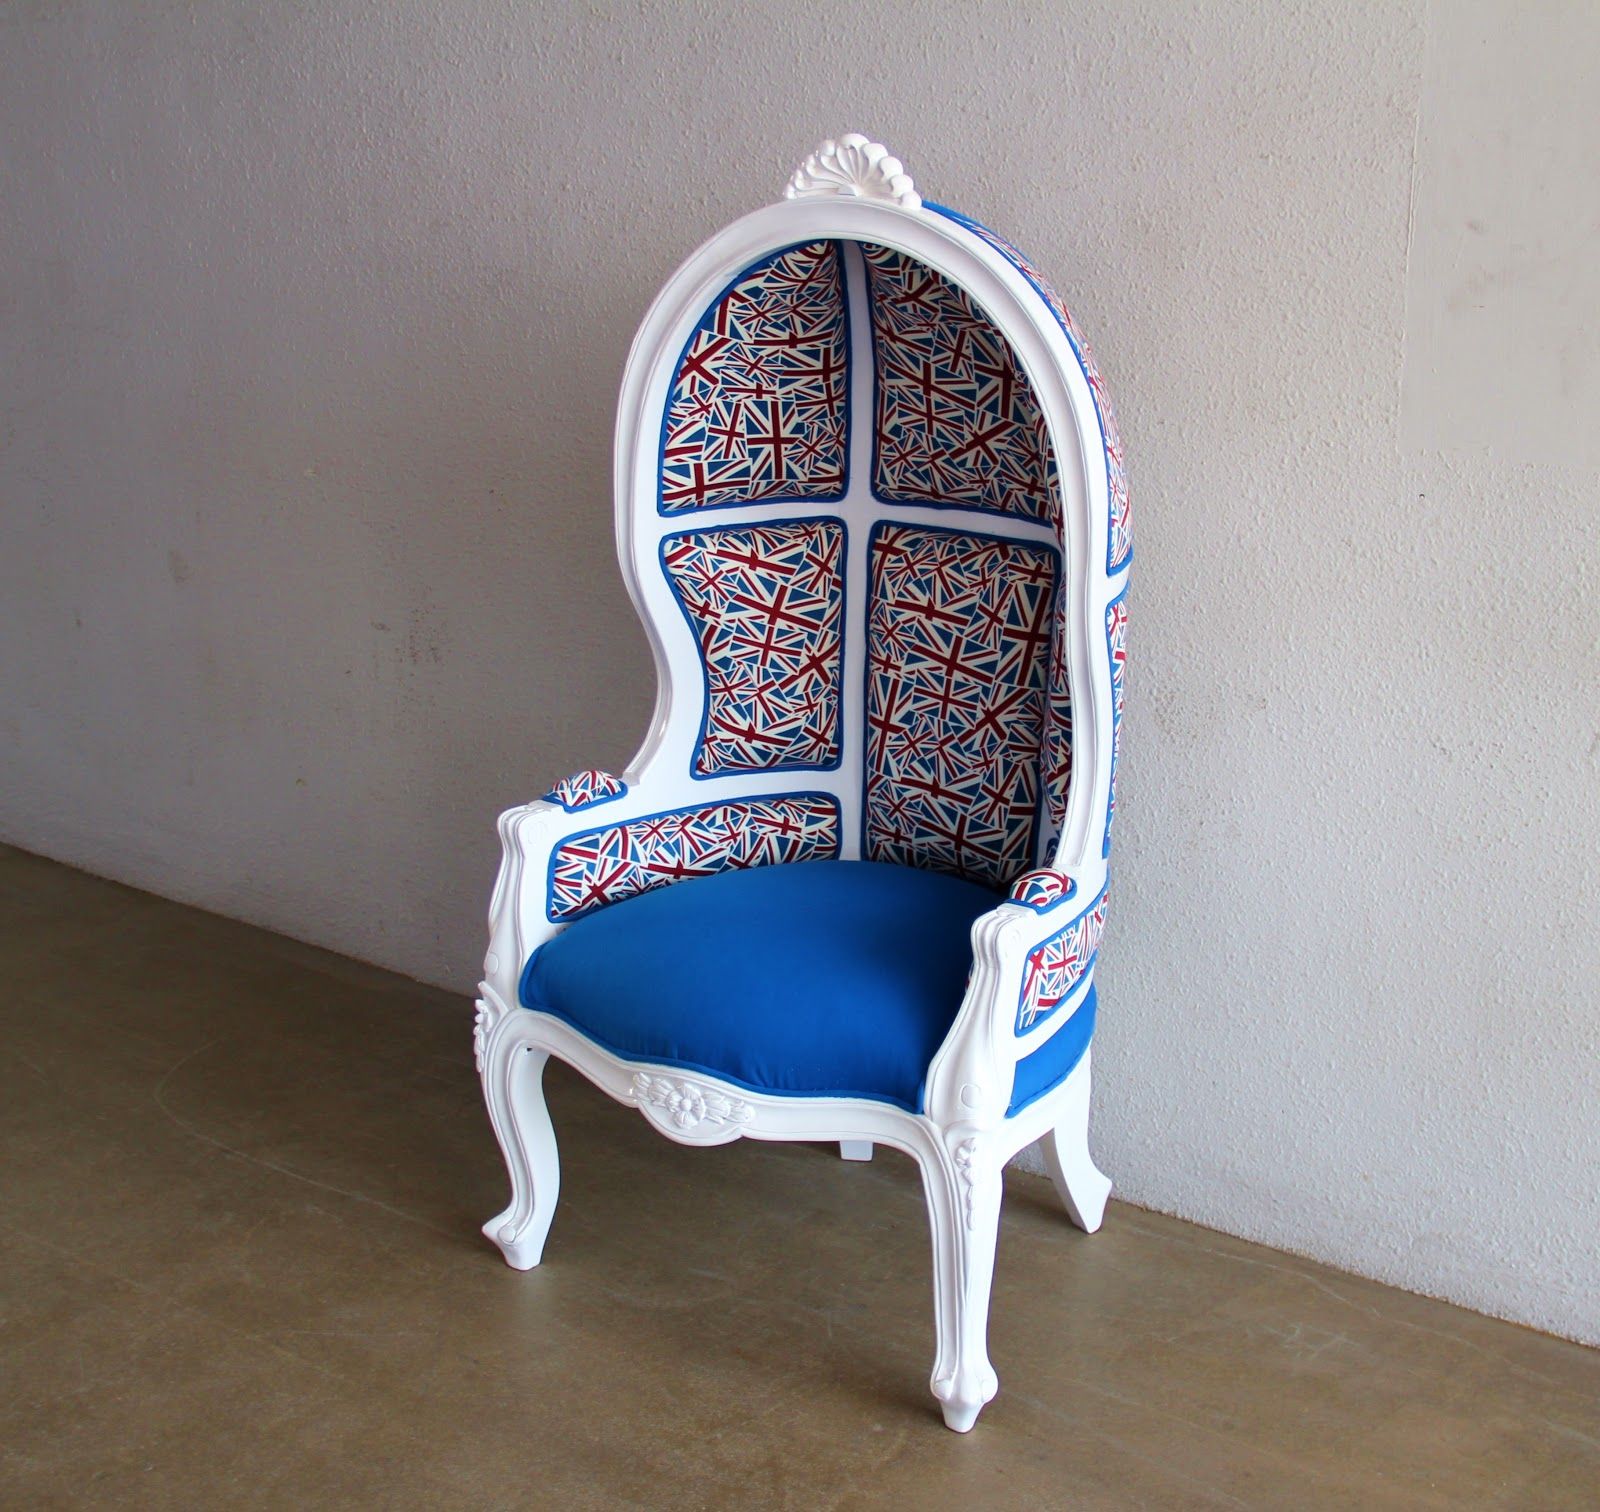 French Canopy Chair Home Depot Adirondack Chairs Furniture With A Twist Second Charm